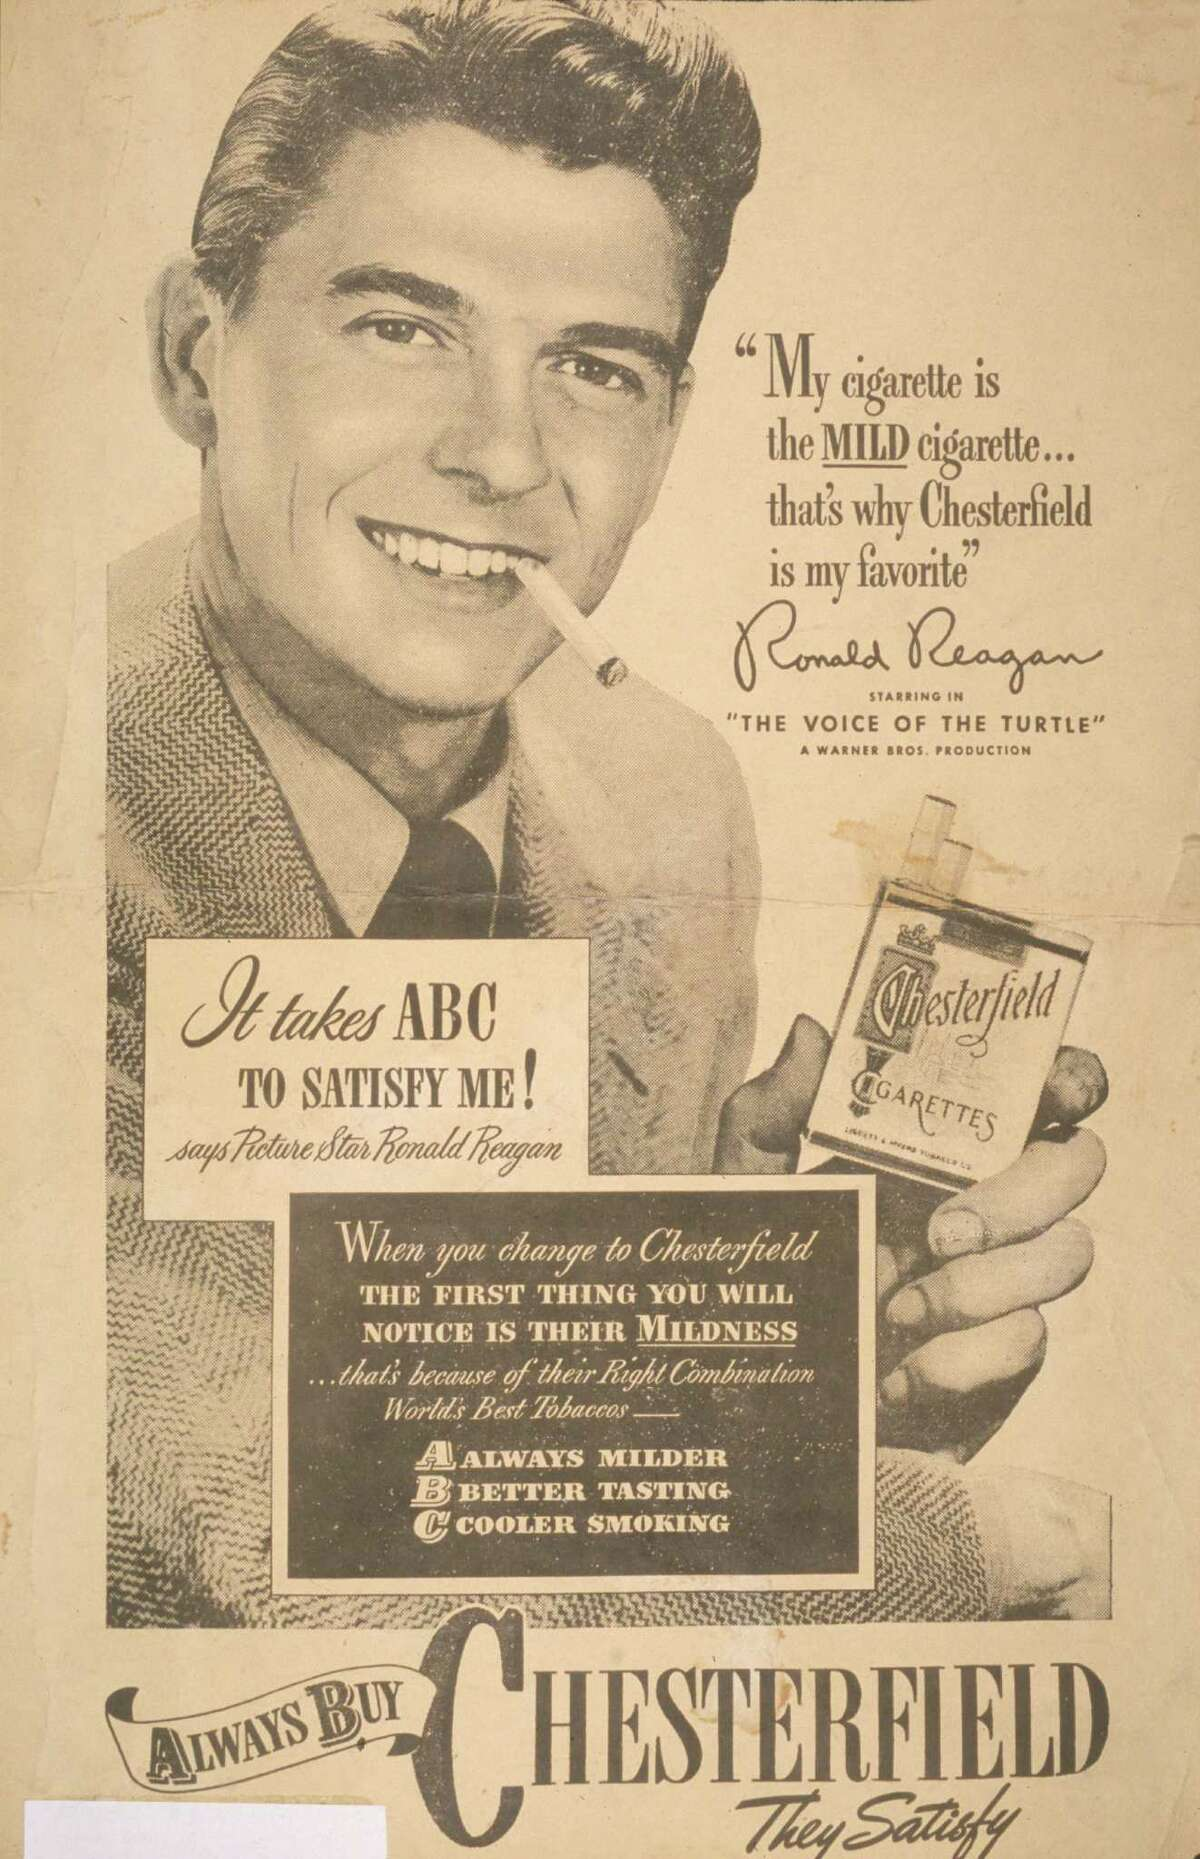 Movie actor and future President Ronald Reagan holds a pack of cigarettes and smokes as he appears in a print advertisement for the Chesterfield brand of cigarettes, late 1940s. Text includes: 'My cigarette is the mild cigarette...that's why Chesterfield is my favorite' and 'It takes ABC to satisfy me! says picture star Ronald Reagan.'